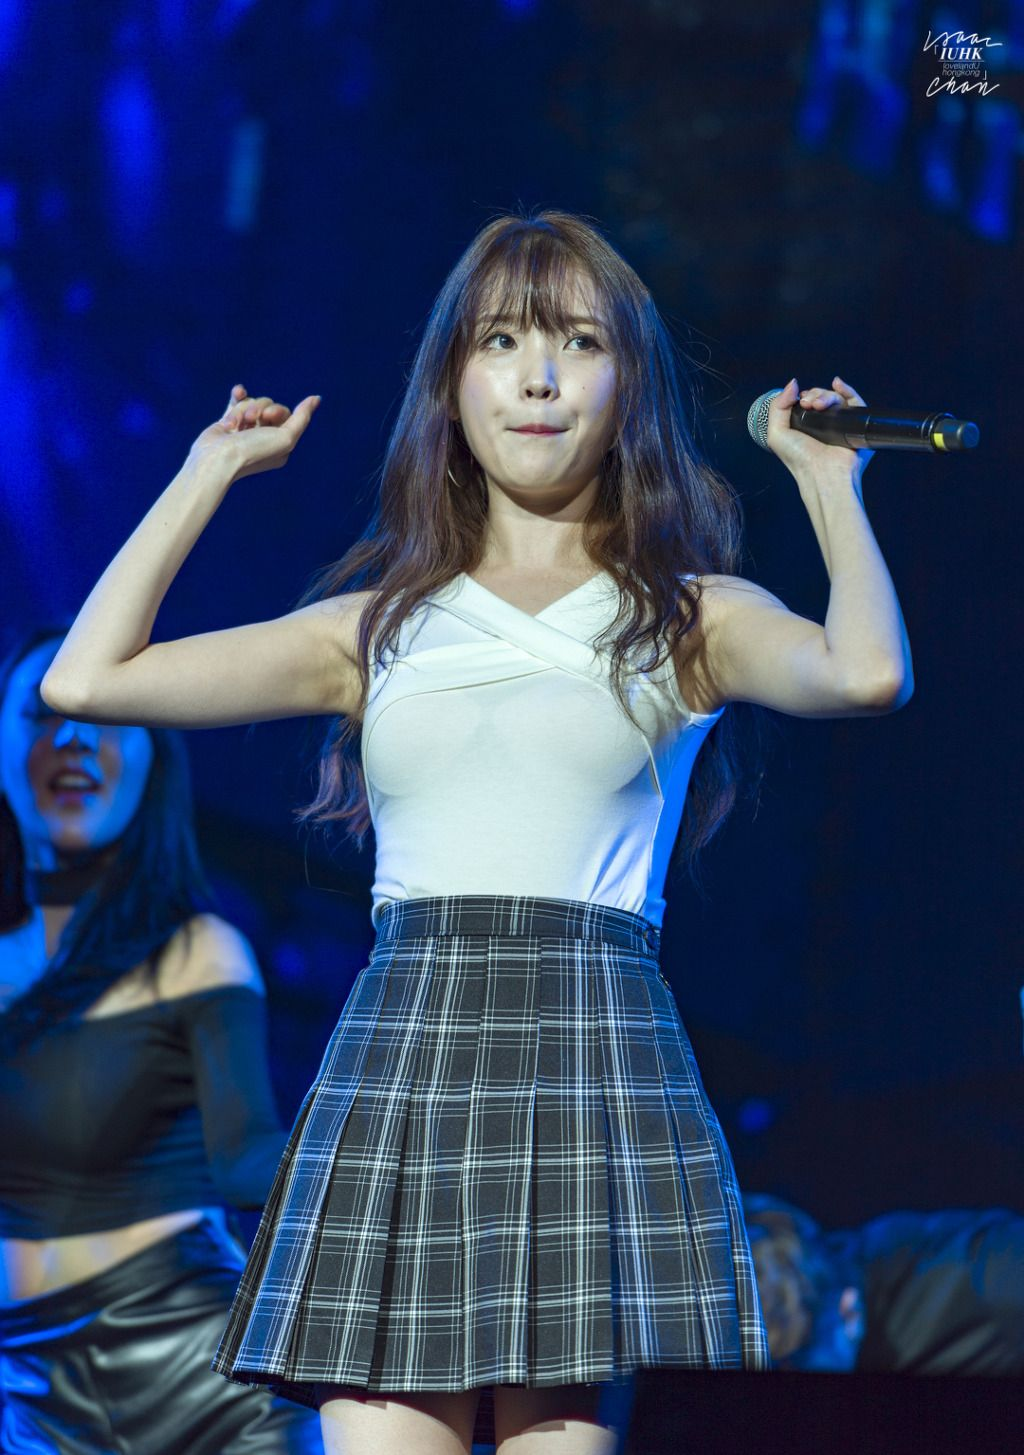 IU Drops Jaws With This Absolutely Hot Outfit | Daily K